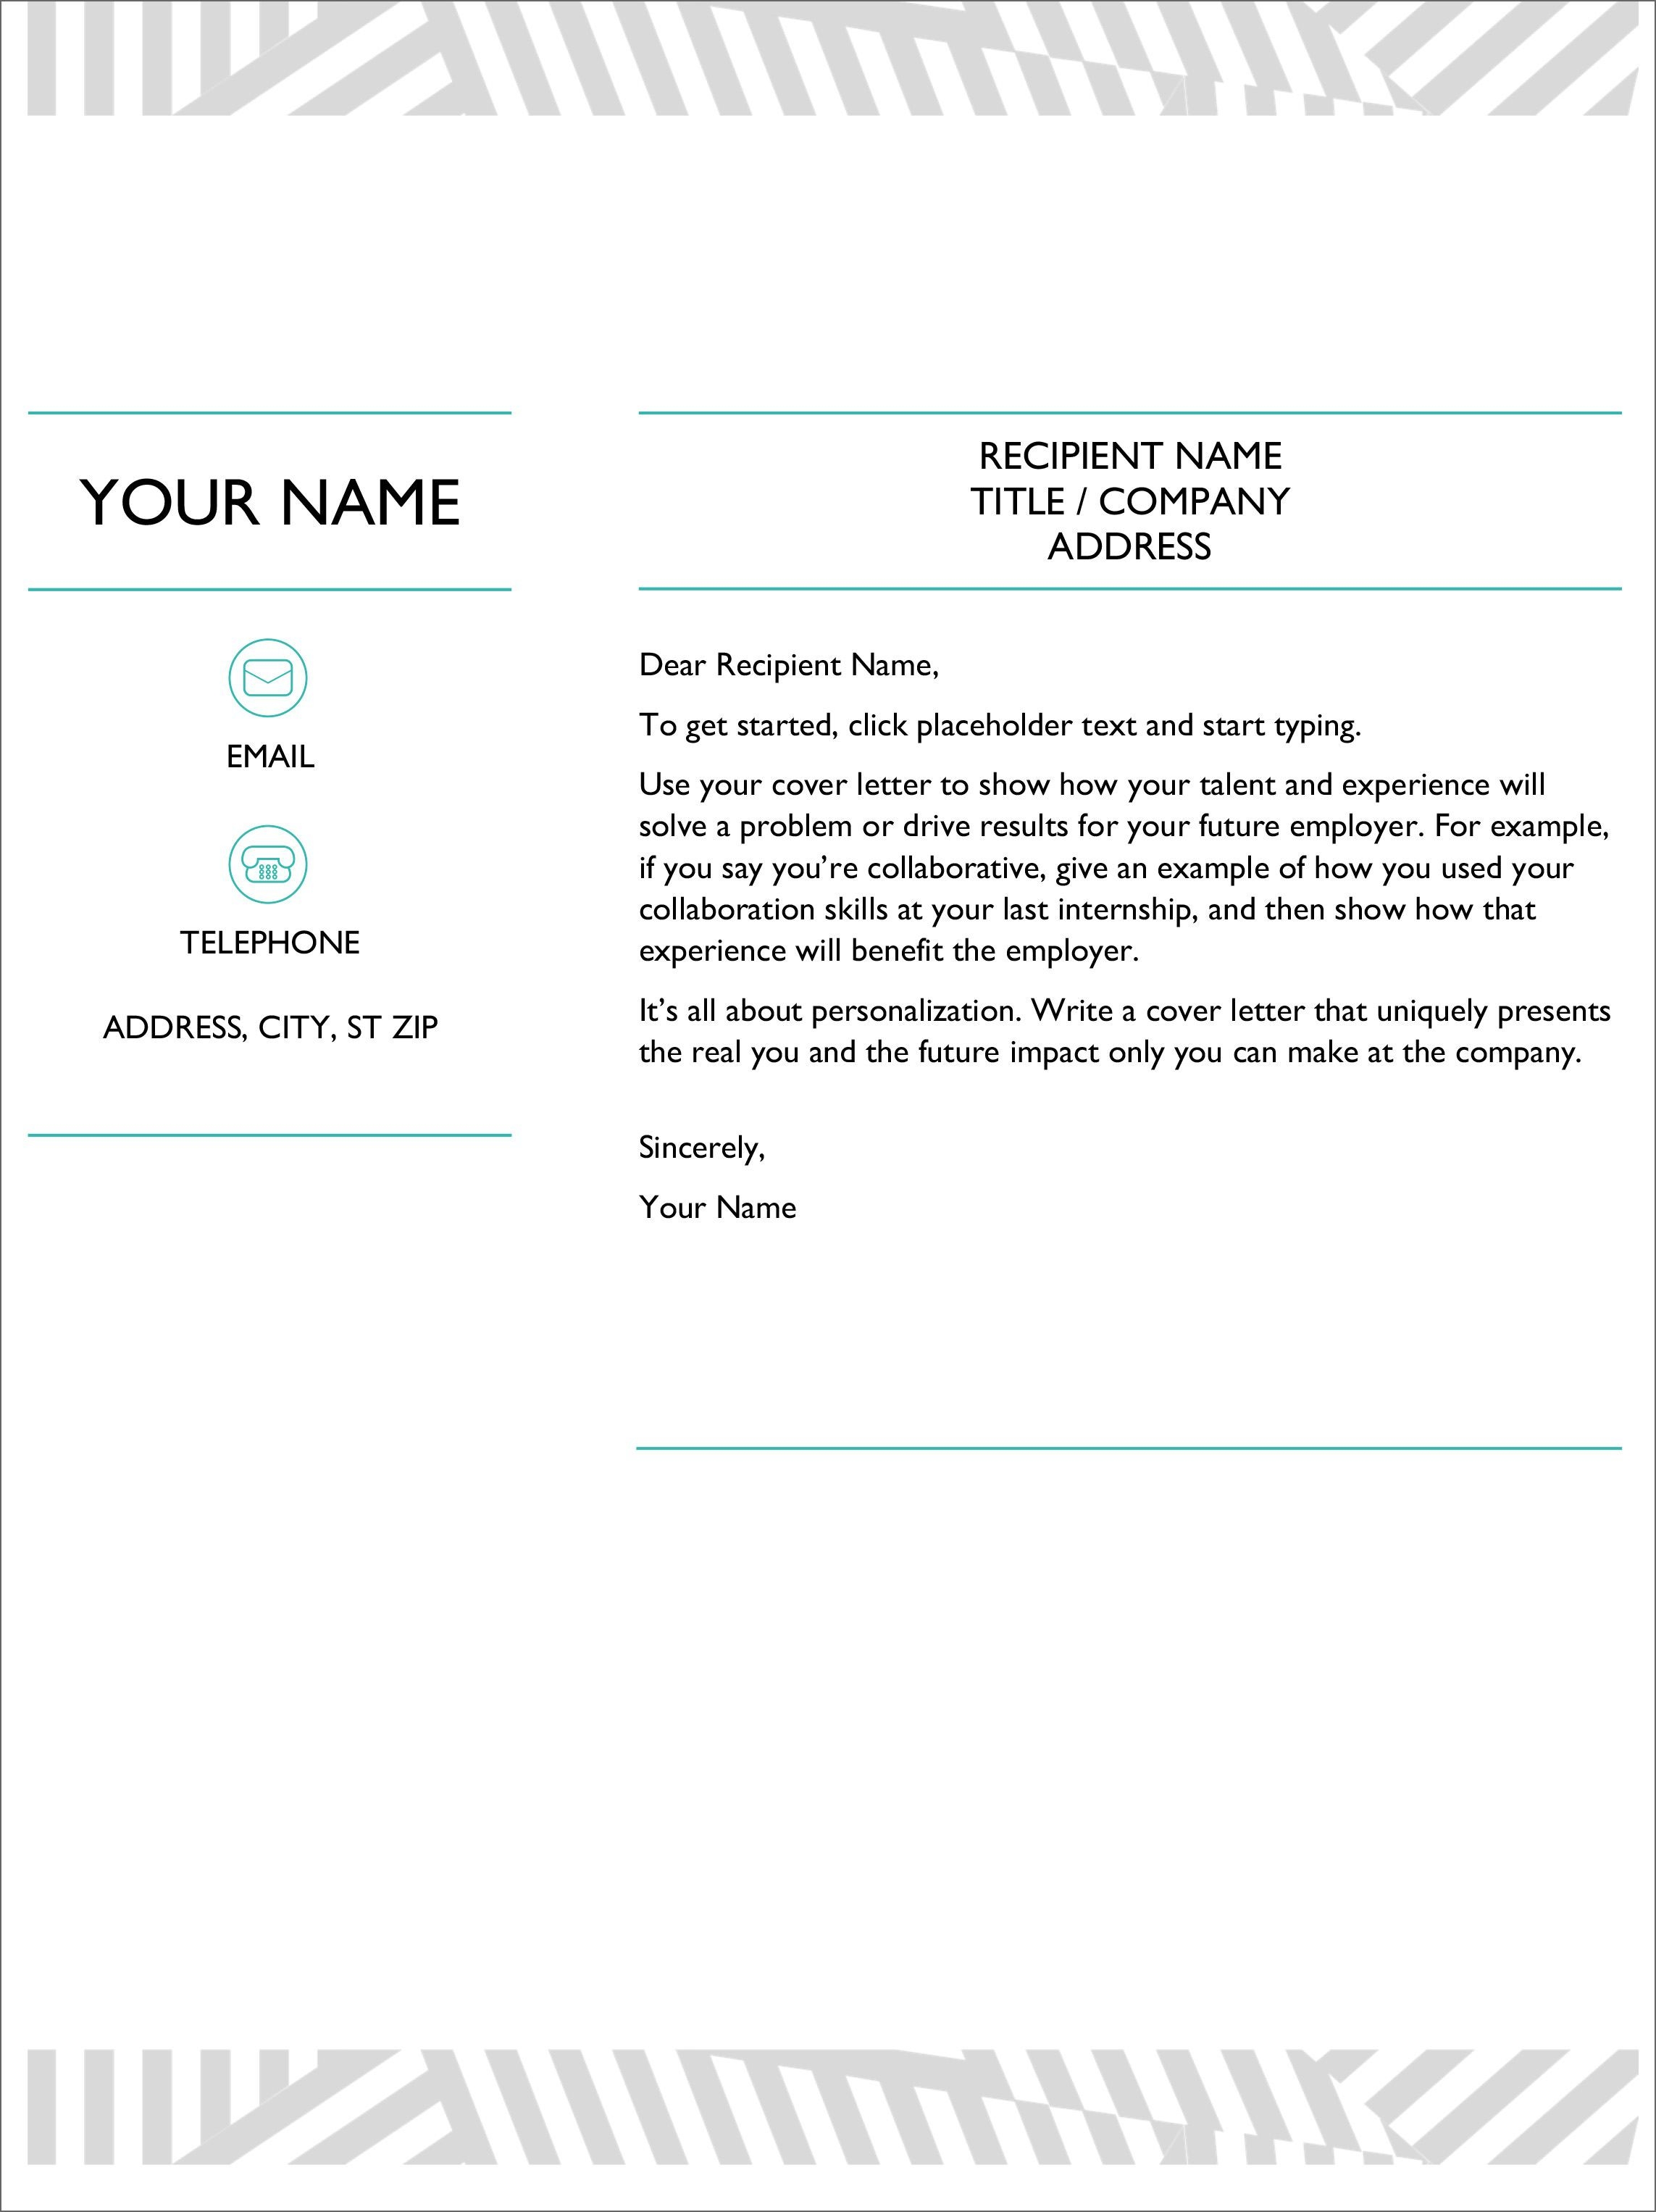 005 Unique Cover Letter Sample Template Word Highest Quality  Resume MicrosoftFull